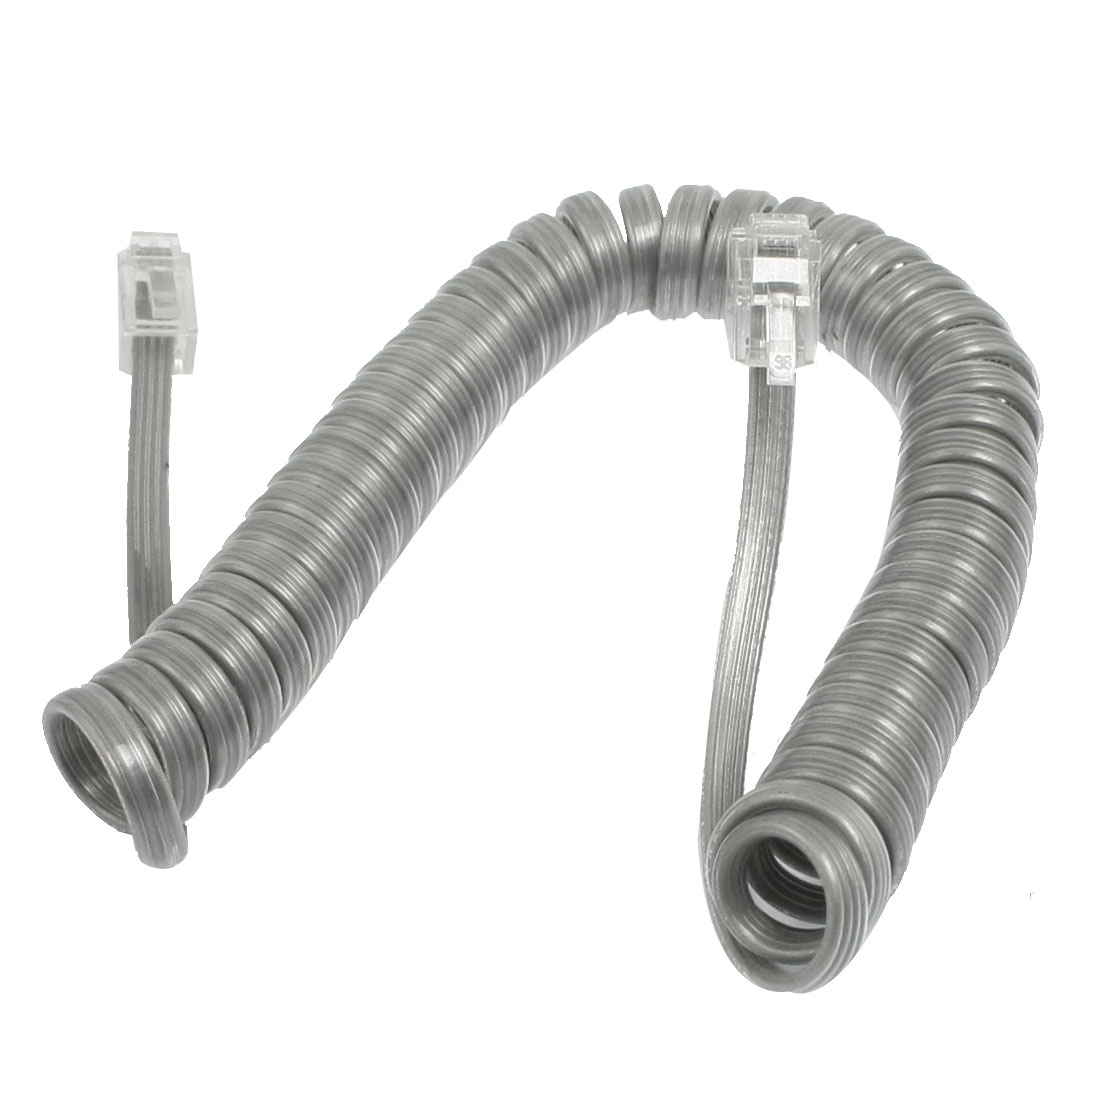 Light Gray Plastic Coiled Cable RJ9 4P4C Connectors Telephone Phone Line